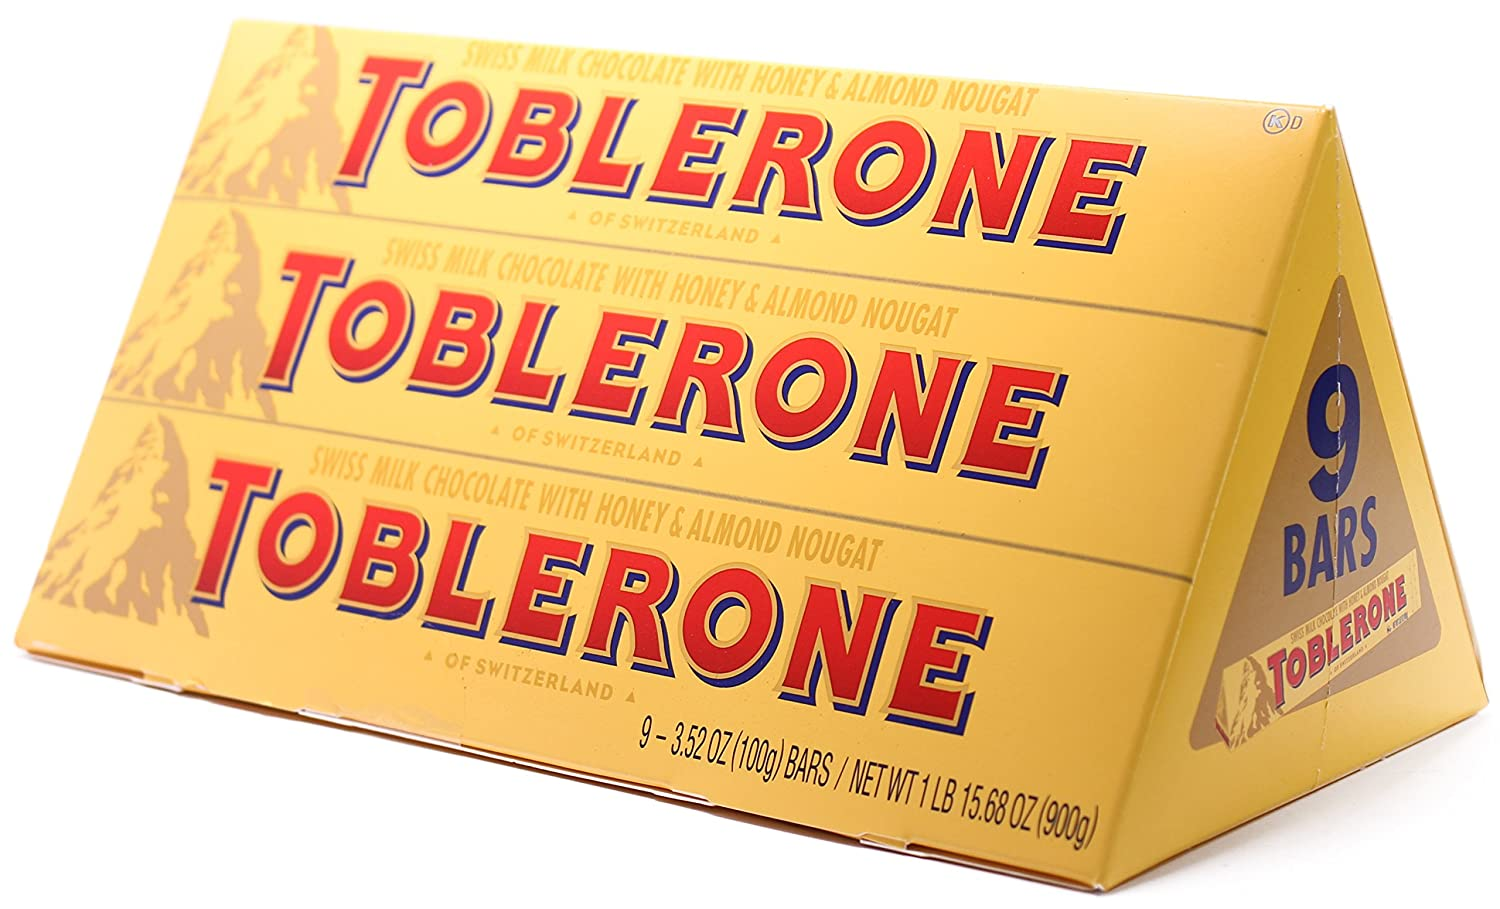 Amazon.com : Toblerone Swiss Milk Chocolate With Honey & Almond ...